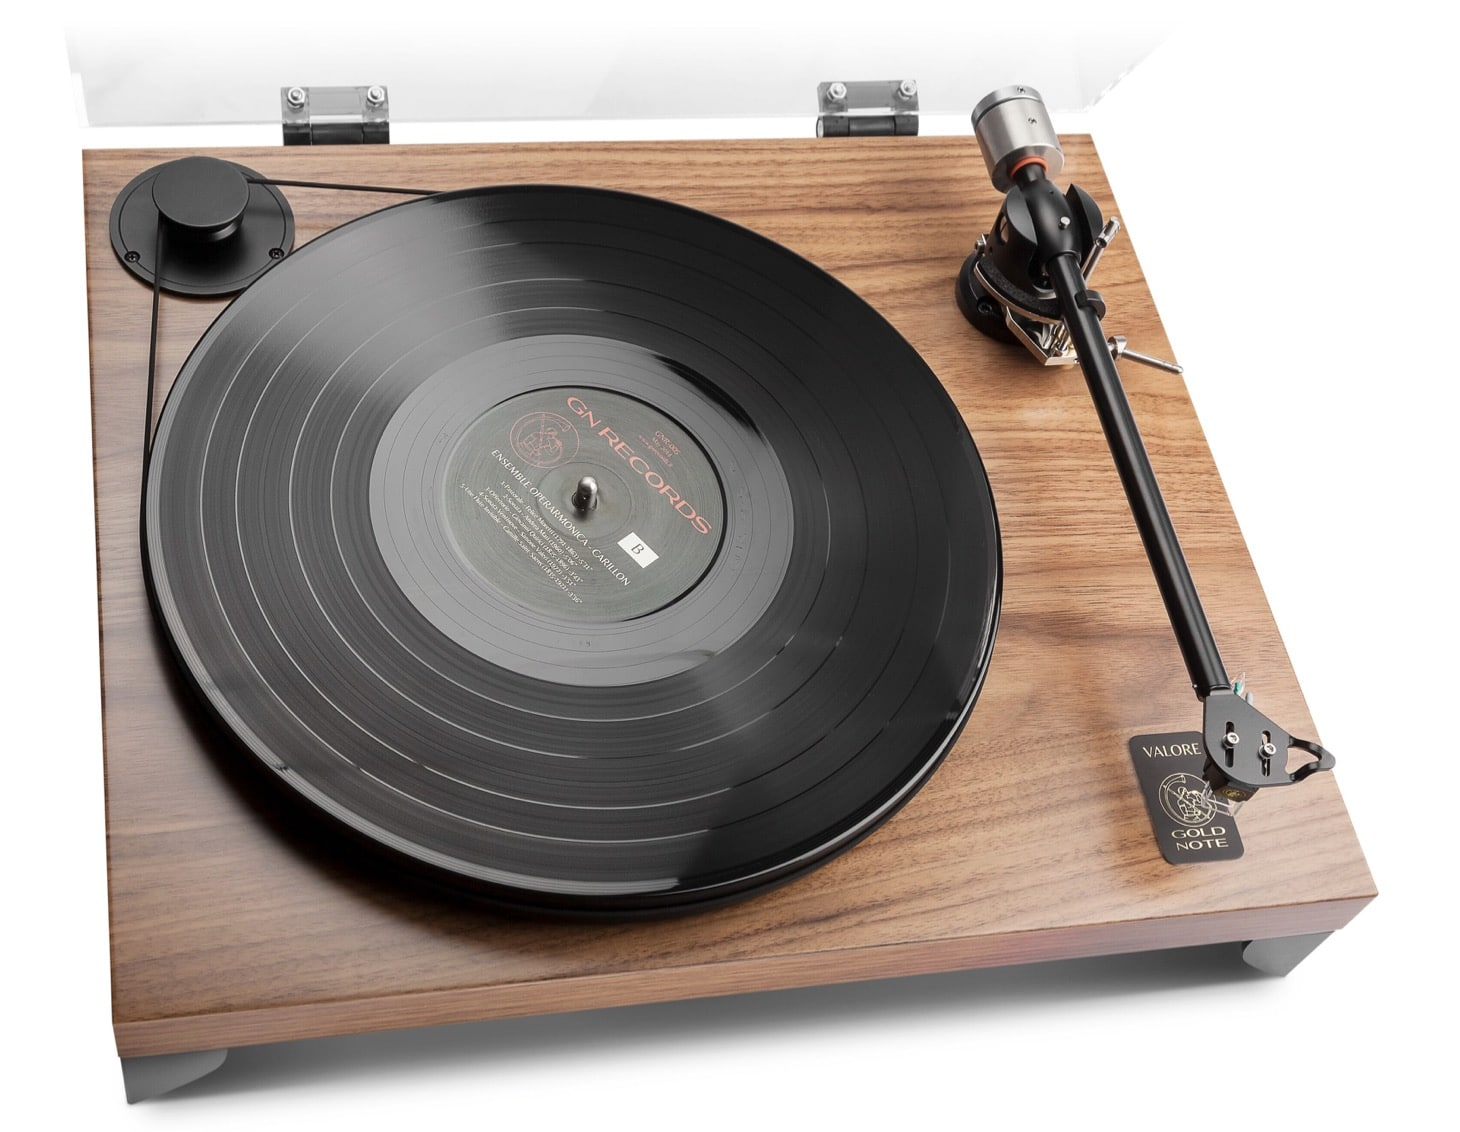 Valore 425 Turntable From Gold Note